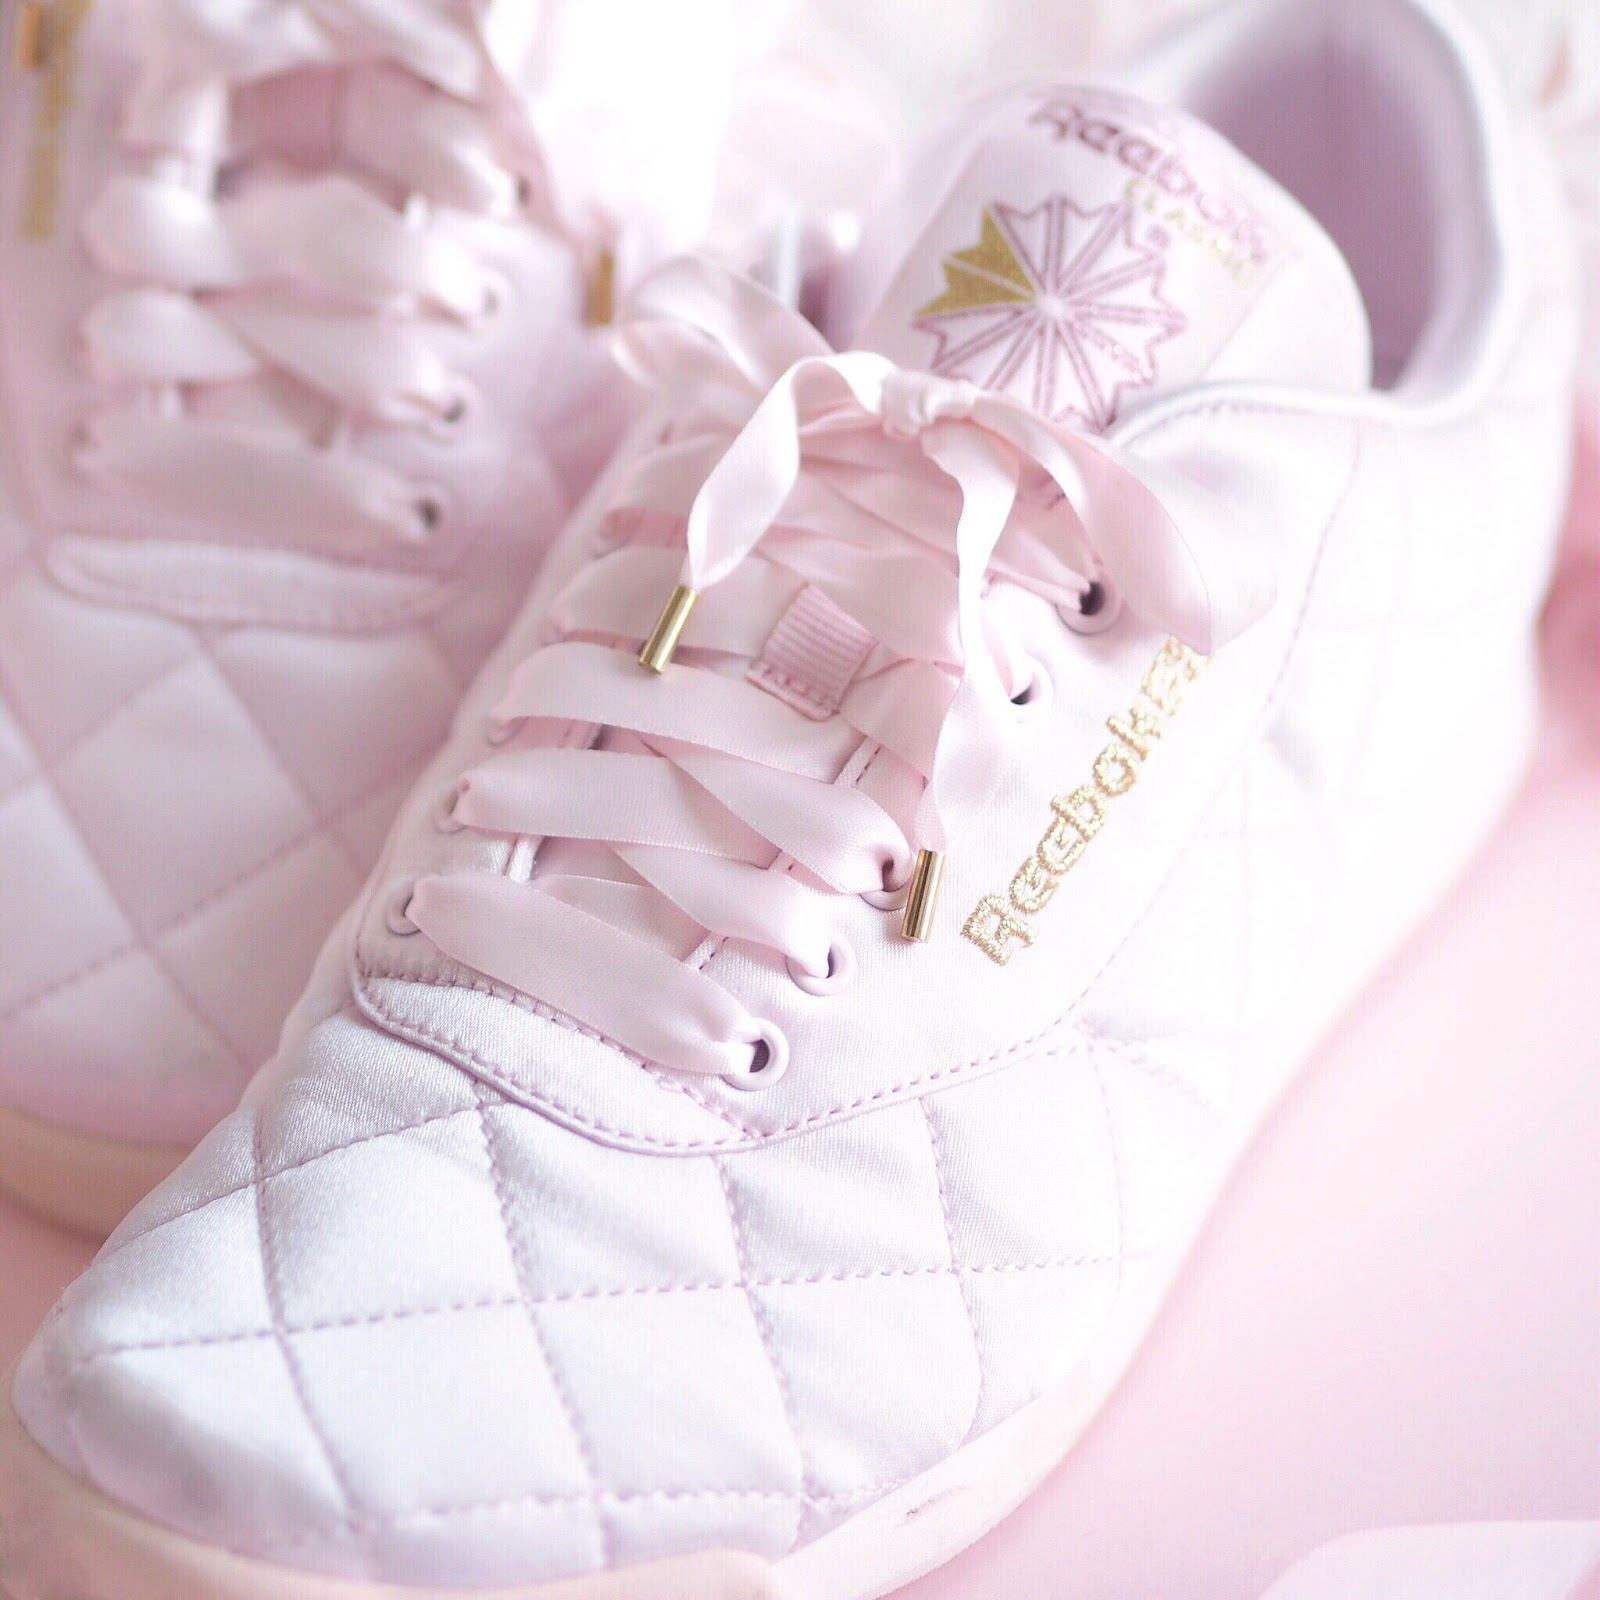 ASOS x Reebok Pink Satin Quilted Princess Trainers | What I Got Treated To On Christmas Day